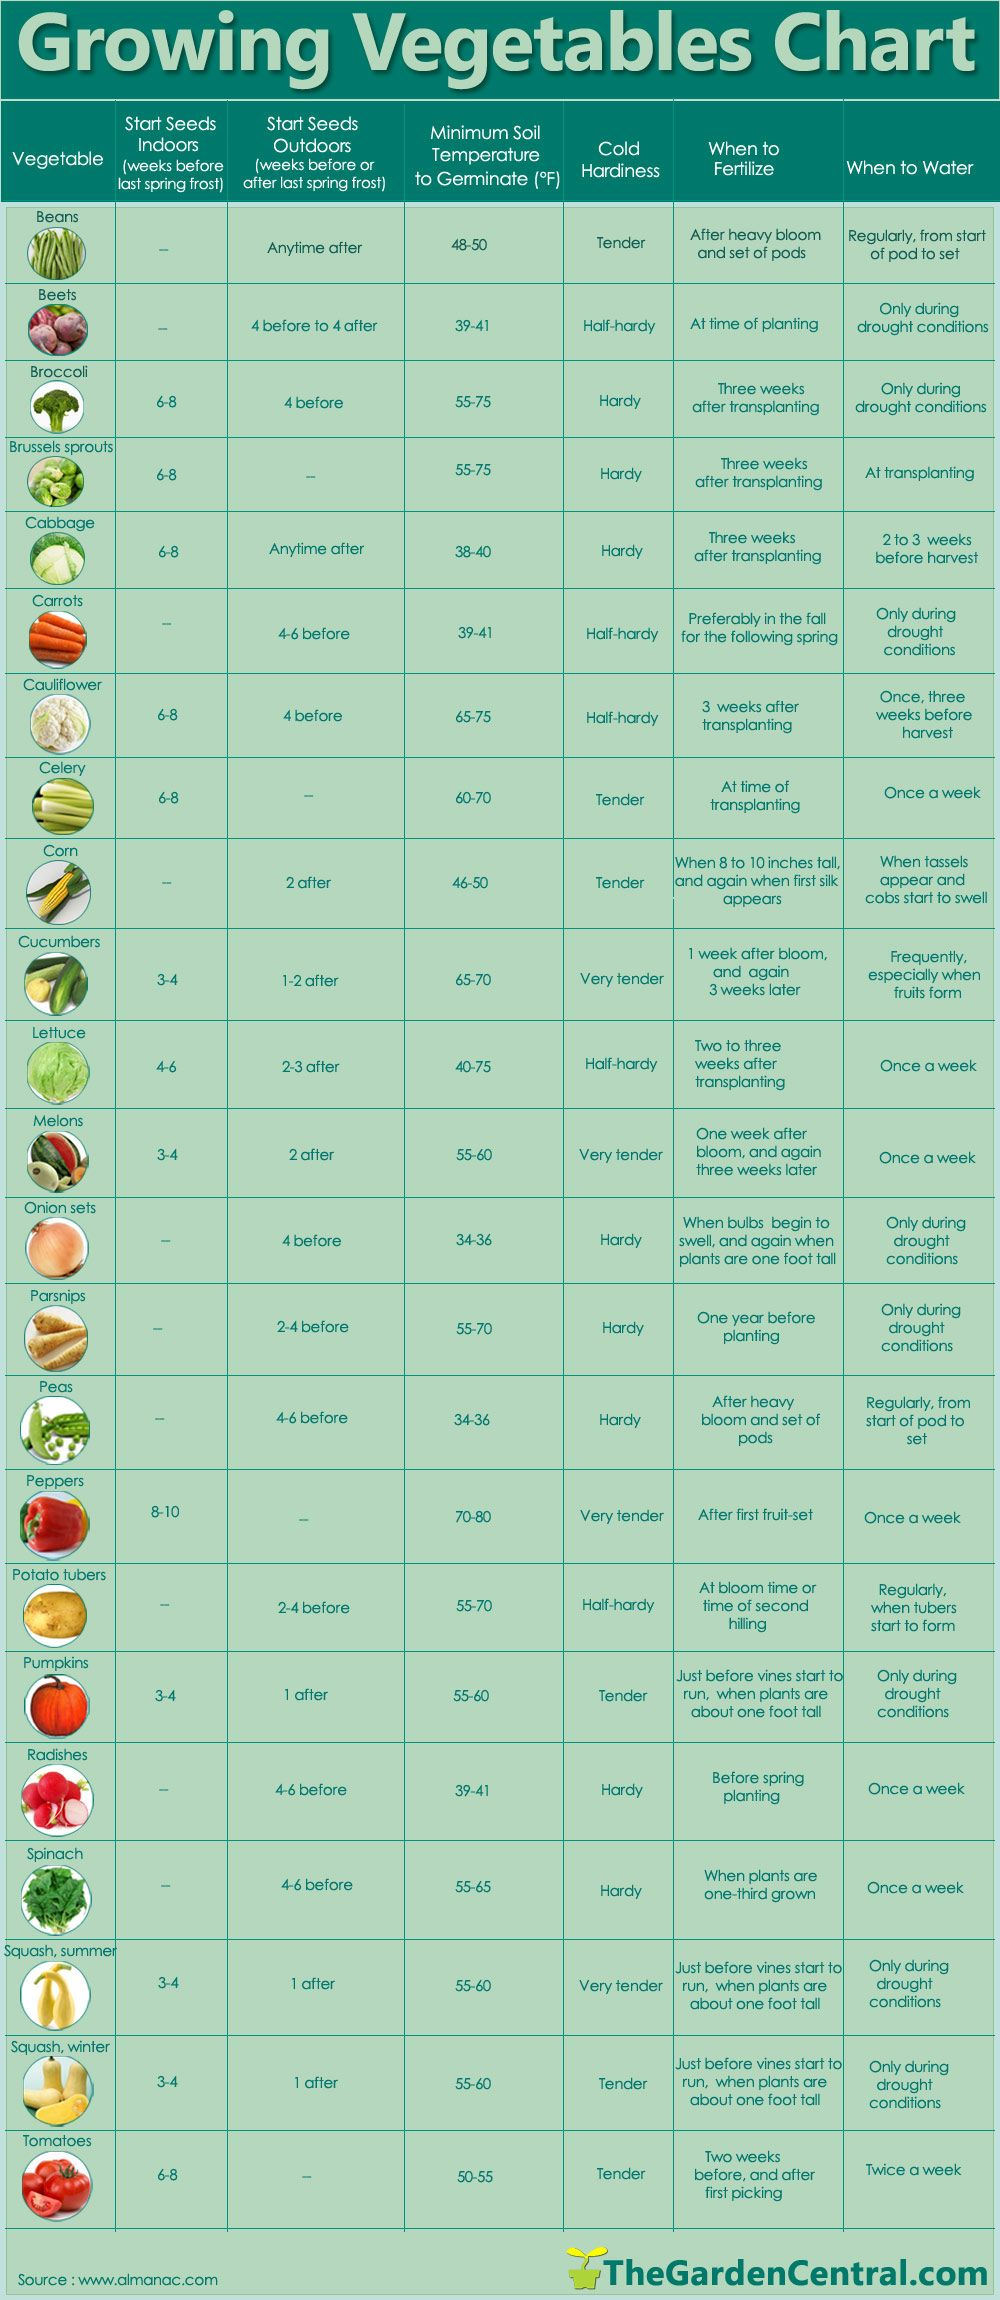 Genial Growing Plants And Food Can Be So Overwhelming, Use This Simple Chart. Growing  Vegetables Chart With Info About Watering, Fertilizing, Growing Seeds.